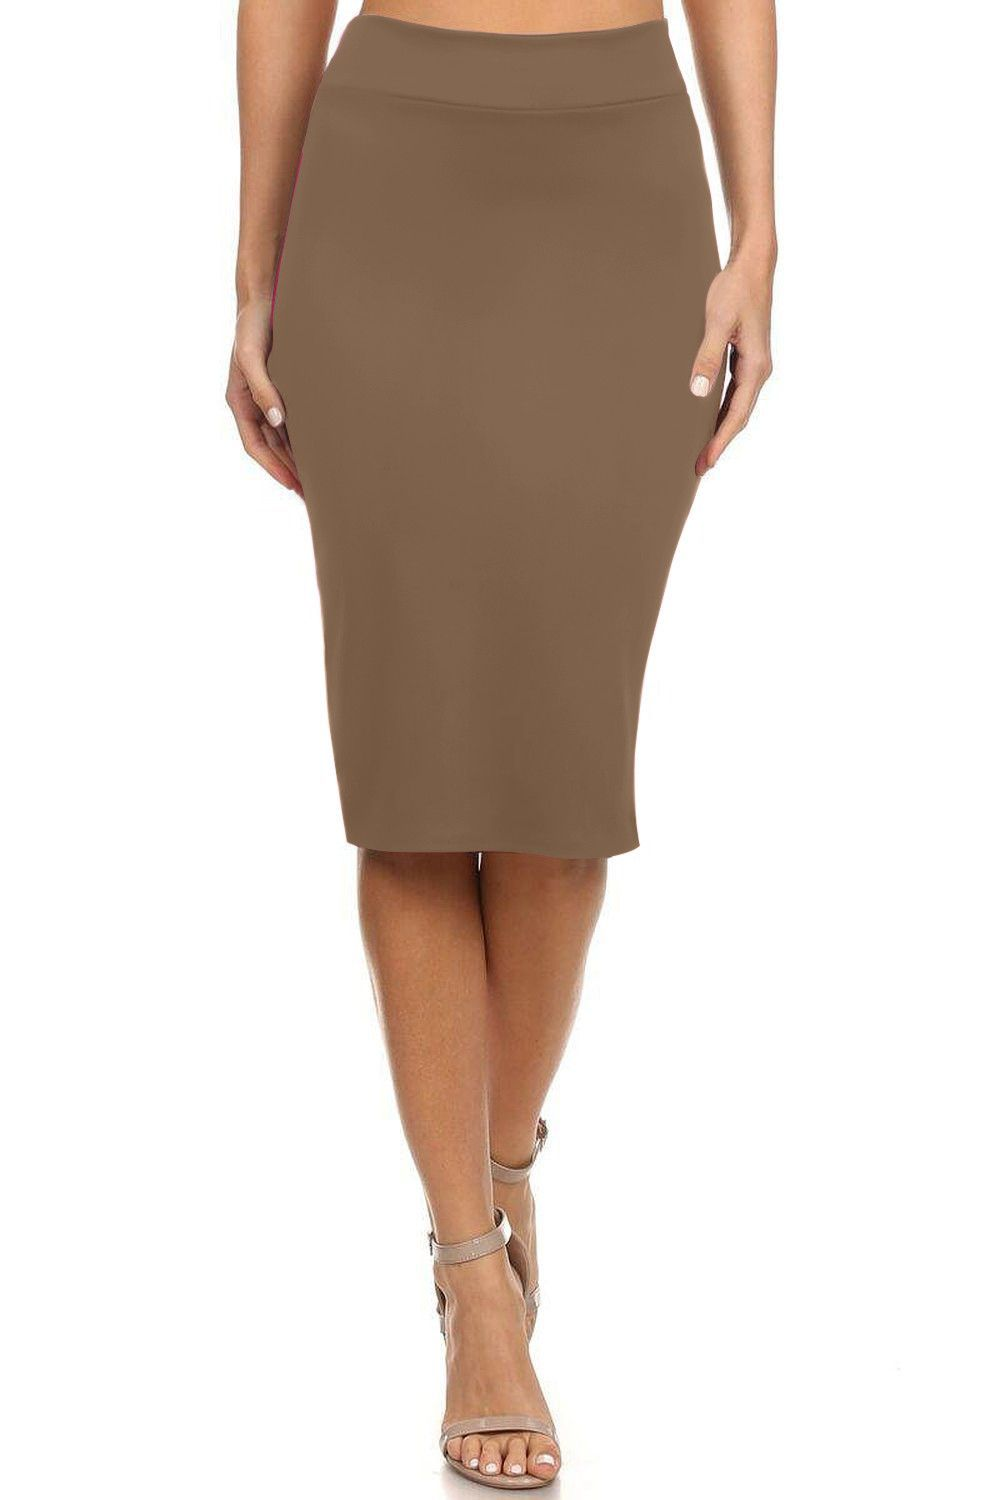 ccc067f5c Welcome to the office pencil skirt | ZCreations | Blue pencil skirts ...